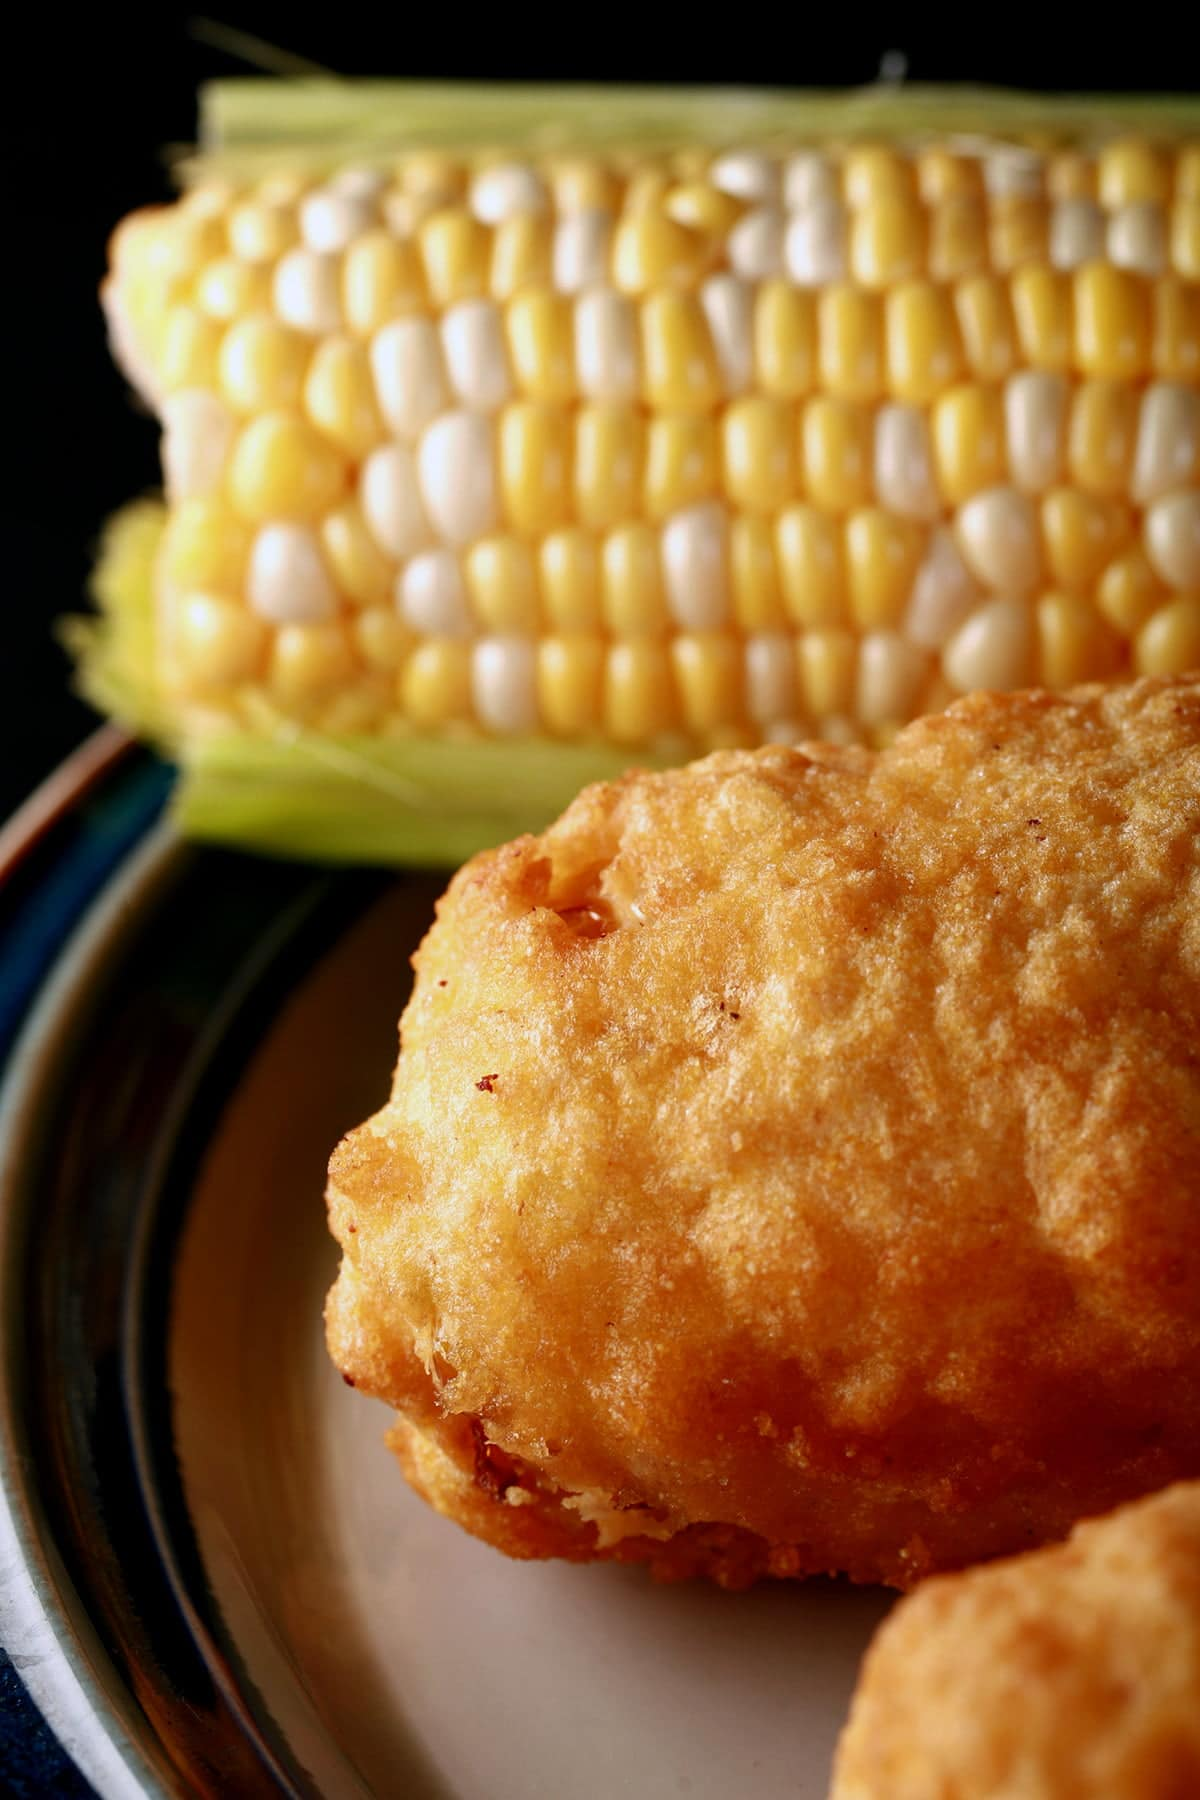 2 cobs of corn - 1 fresh, 1 battered and deep fried - are lined up on a plate.